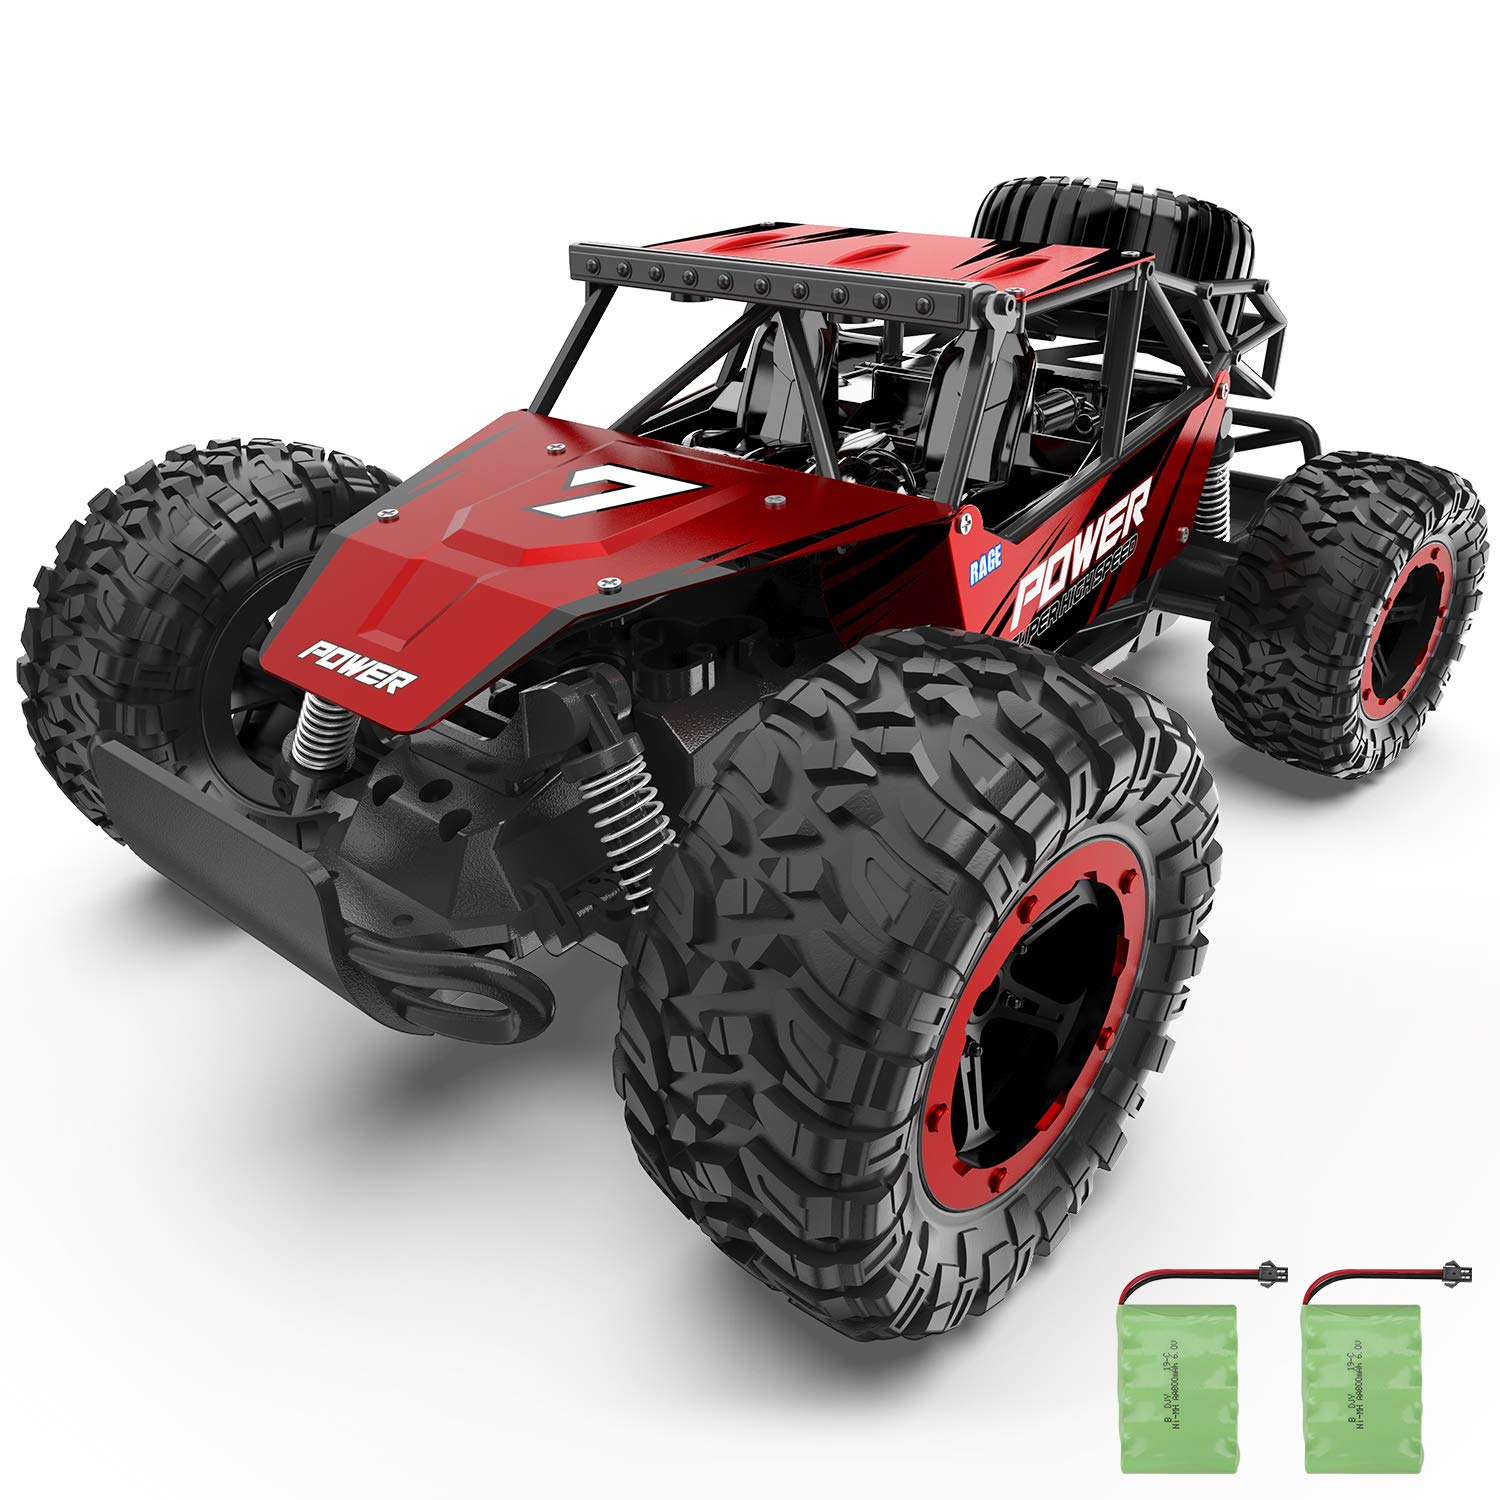 XIXOV High-Speed Off-Road Hobby Crawler Large Size Electronic Racing Vehicle Truck